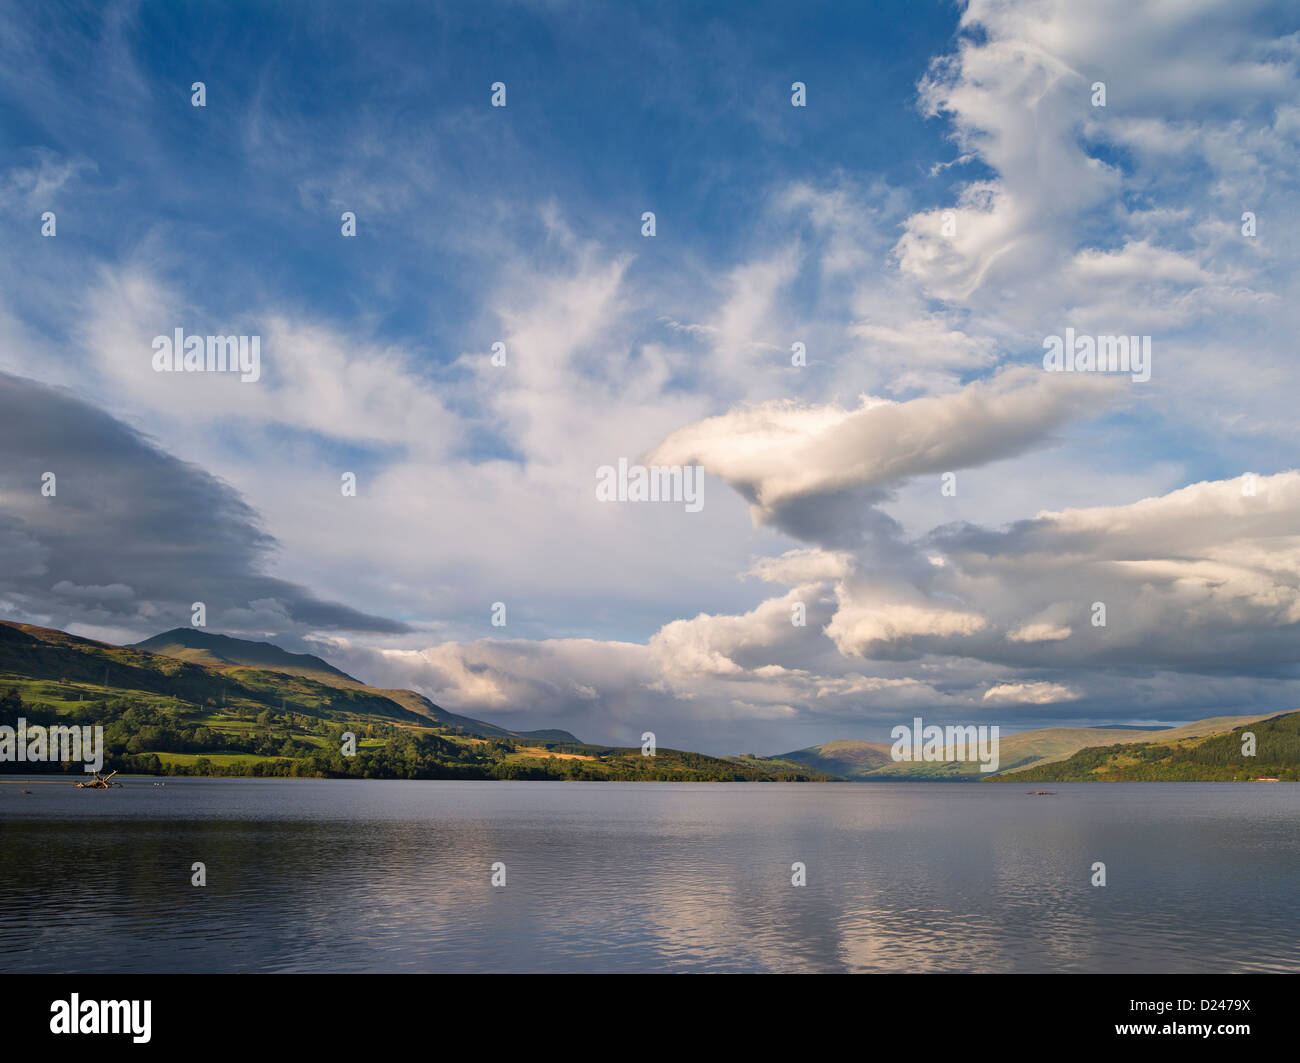 Thunderhead Stock Photos & Thunderhead Stock Images - Alamy